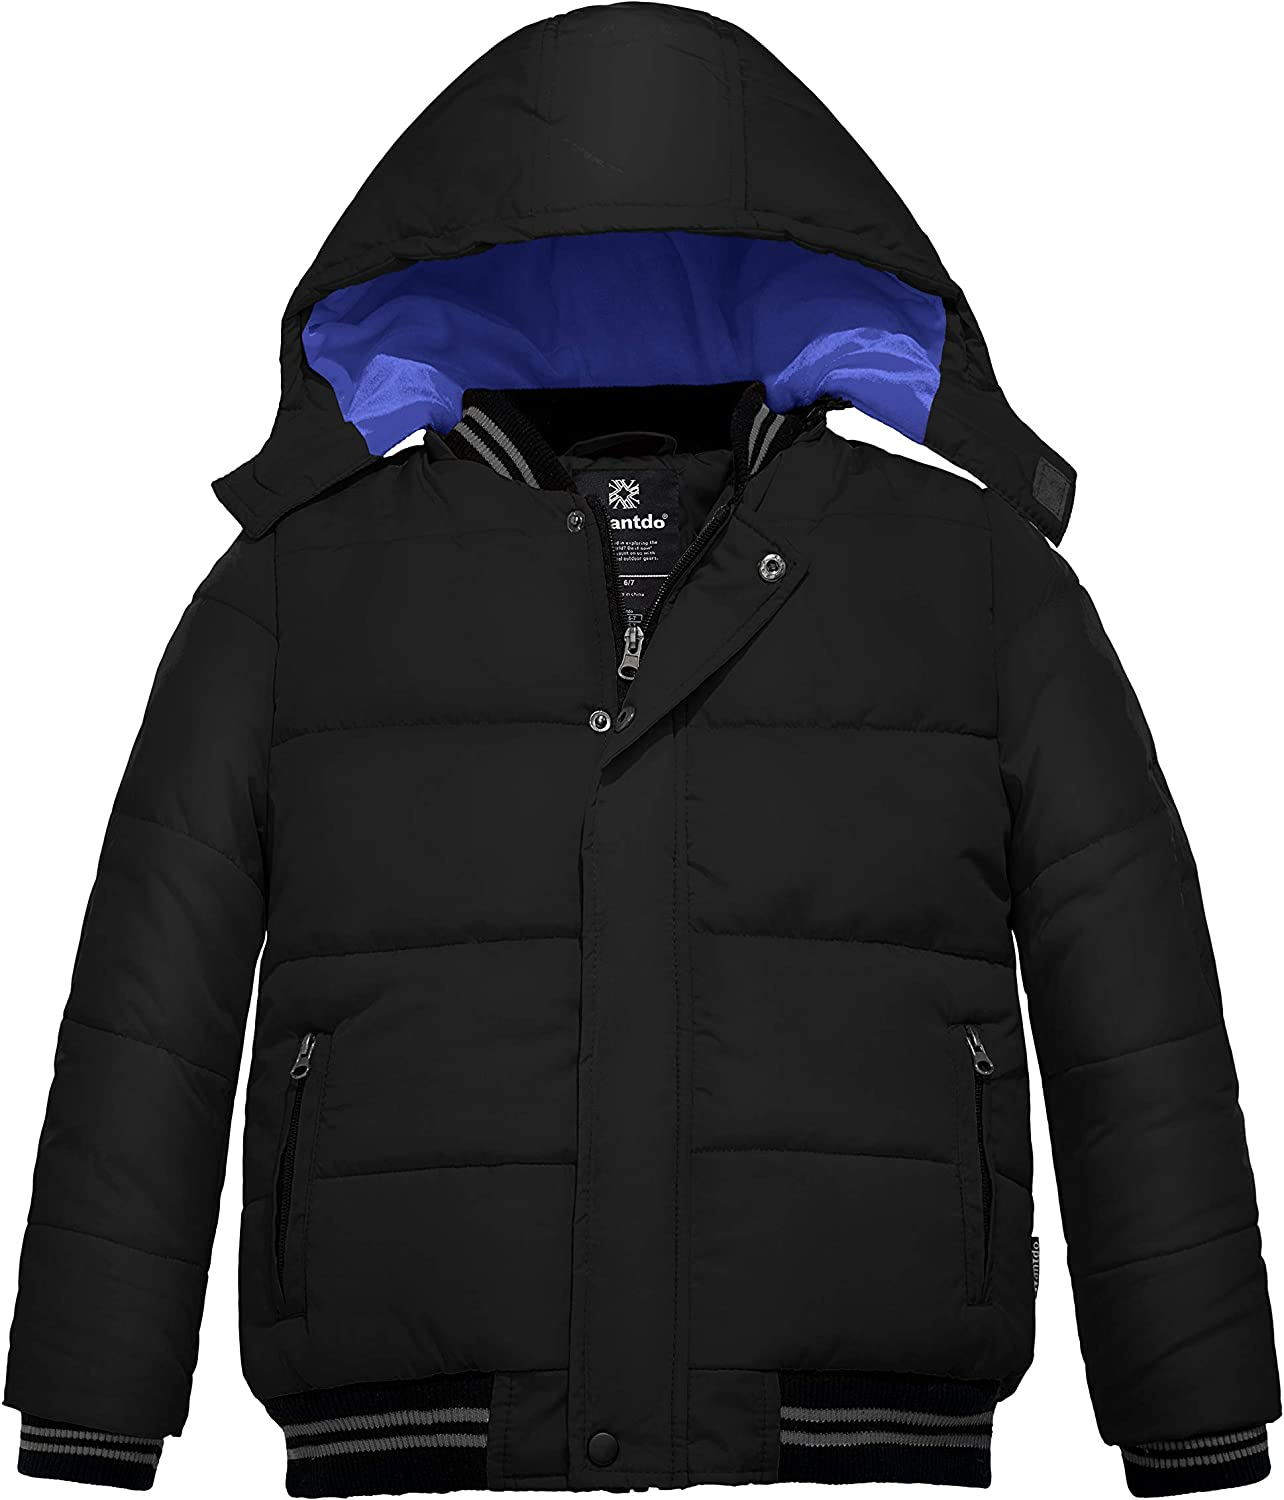 Wantdo Boy's Padded Winter Coat Windproof Puffer Jacket with Removable Hood